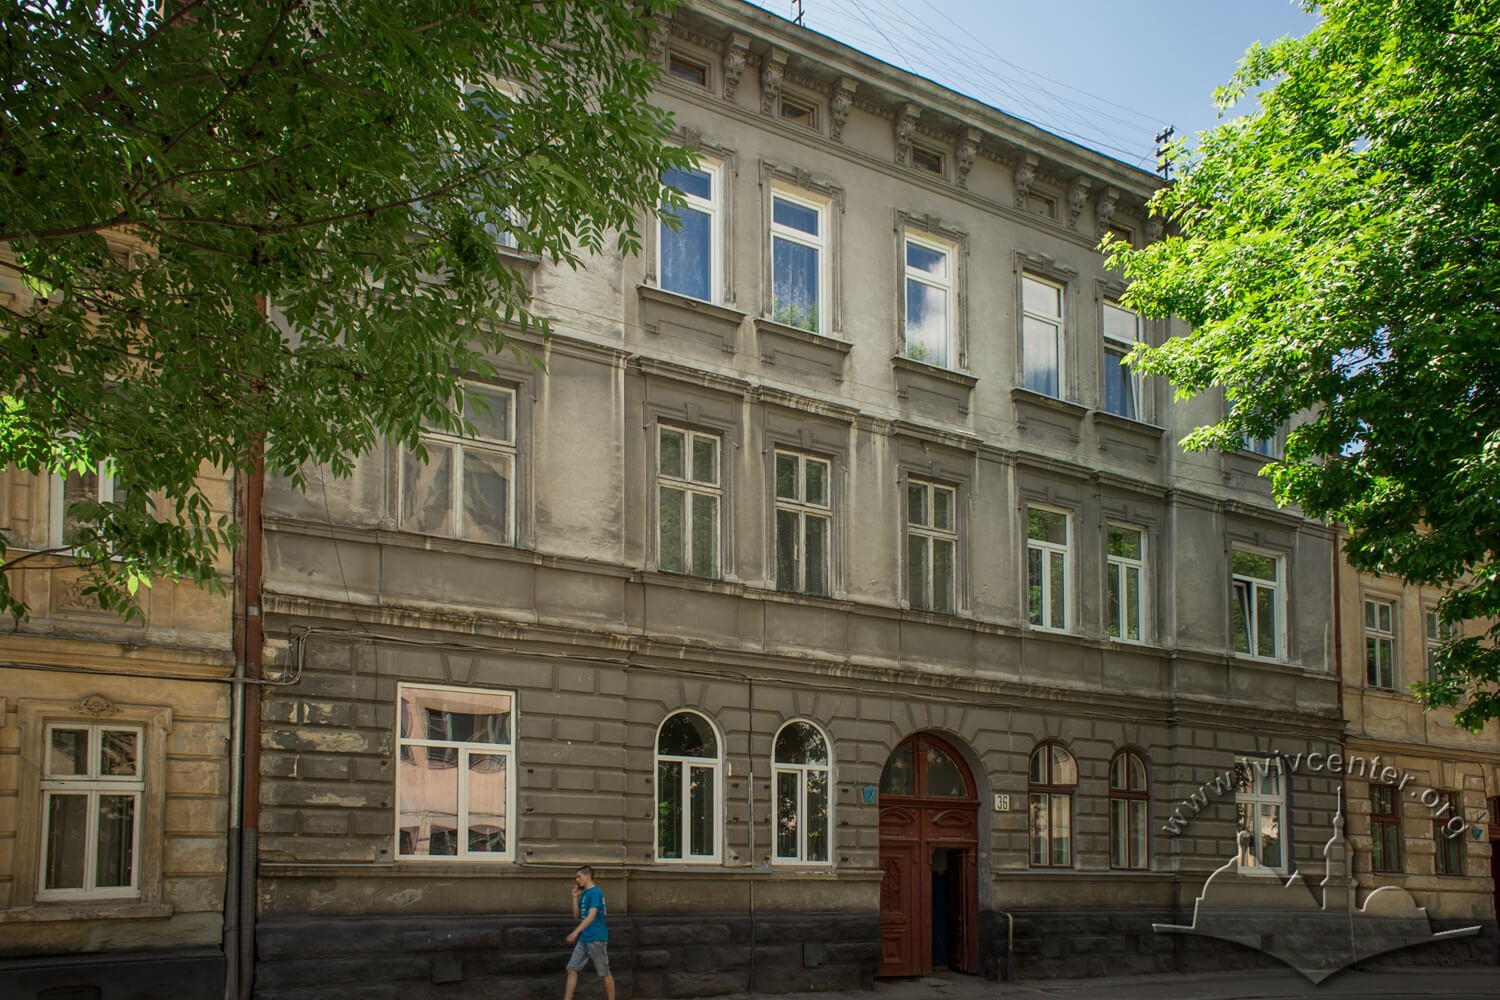 Vul. Zavodska, 36. The main facade of the building today/Photo courtesy of Olha Zarechnyuk, 2016